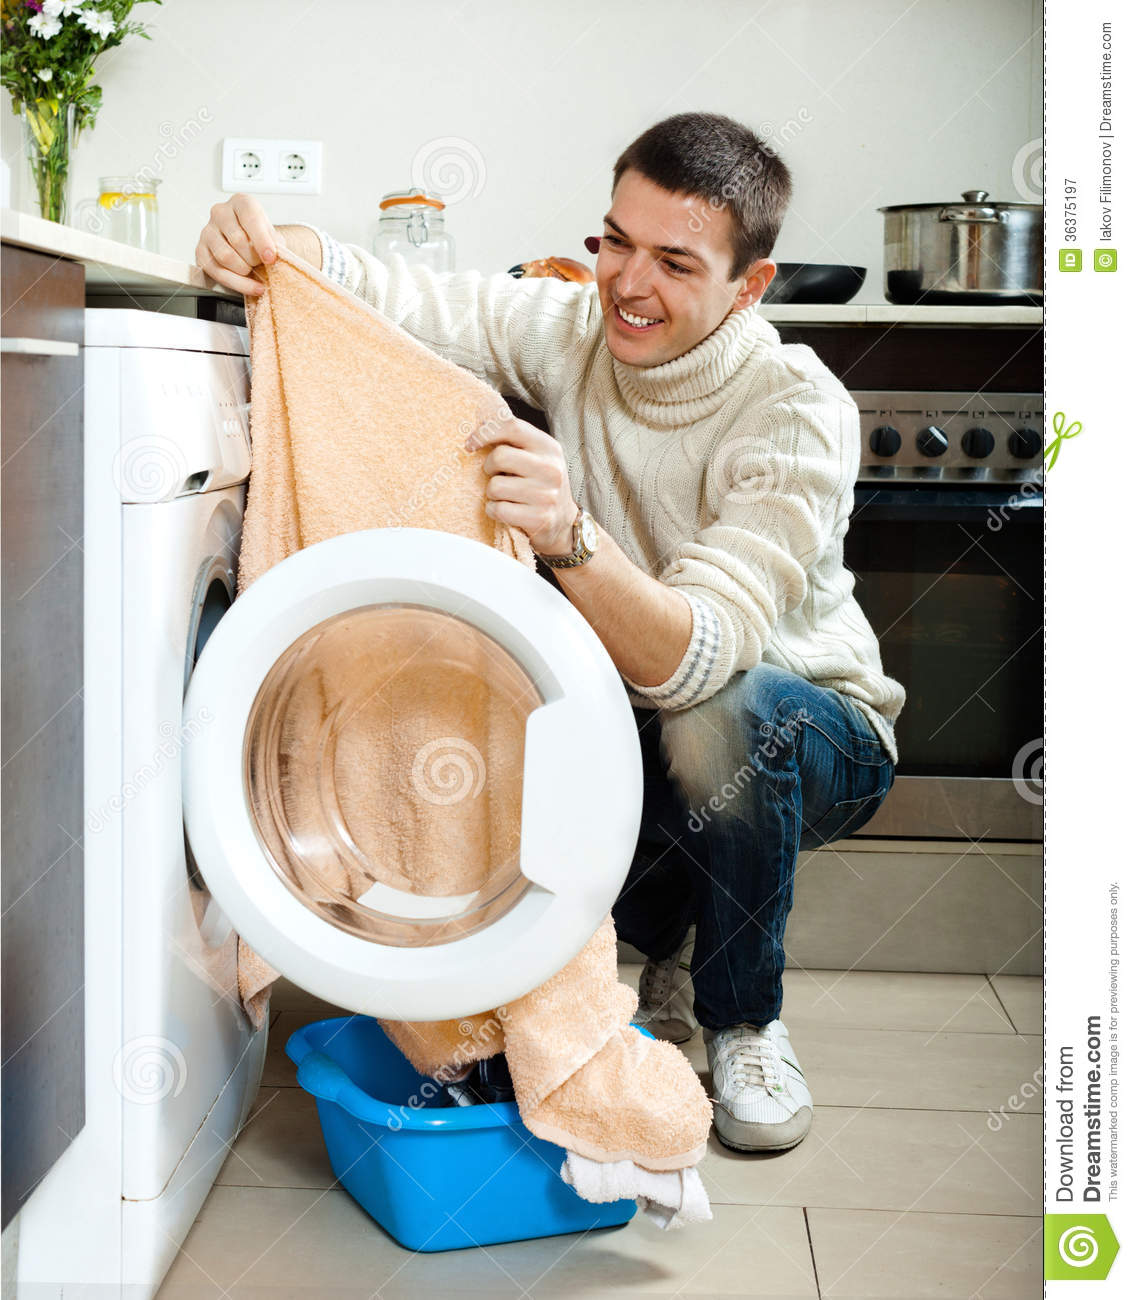 Clothes Washing Machine ~ Guy putting clothes in to washing machine stock image